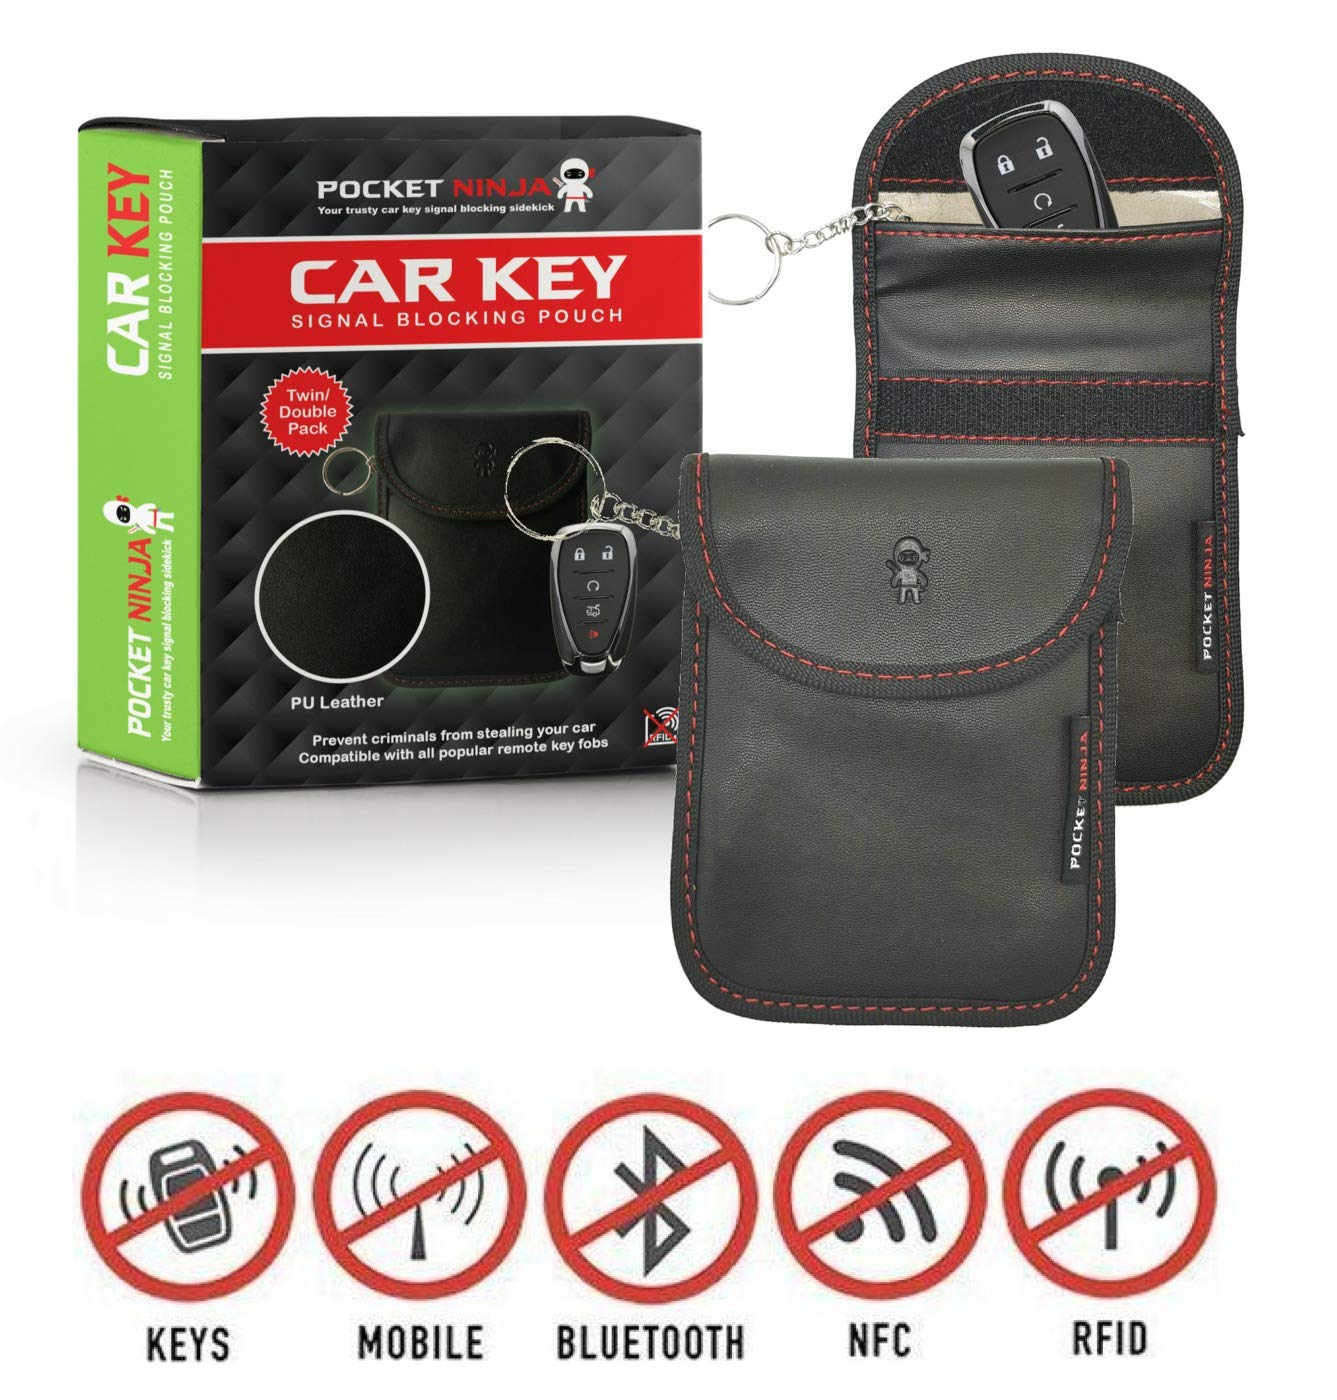 Car Key Signal blocker - Add your keys to this RFID Blocking Faraday Pouch for instant ninja protection. 2 pack (PU Leather) Also great for Cards, Passports and Phones. Project Ninja